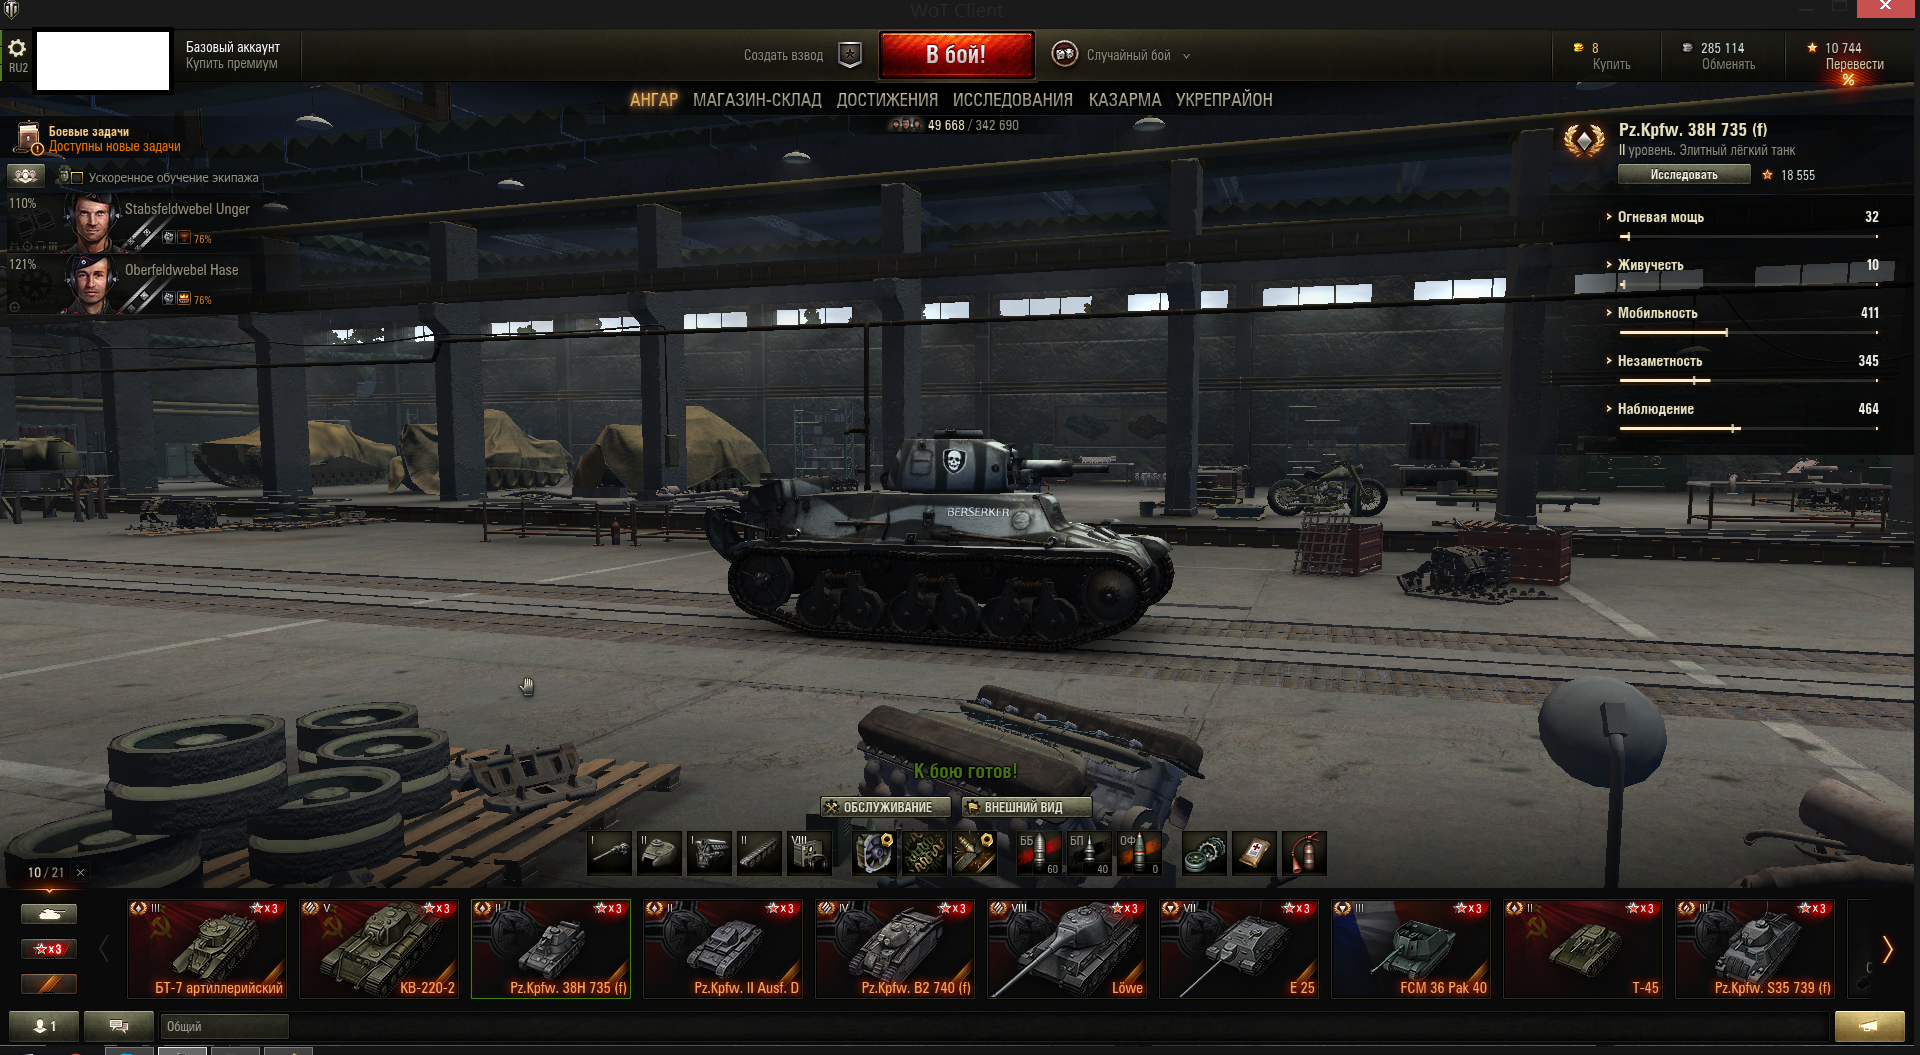 Account World of Tanks 52% 11k (+ mail, without referen